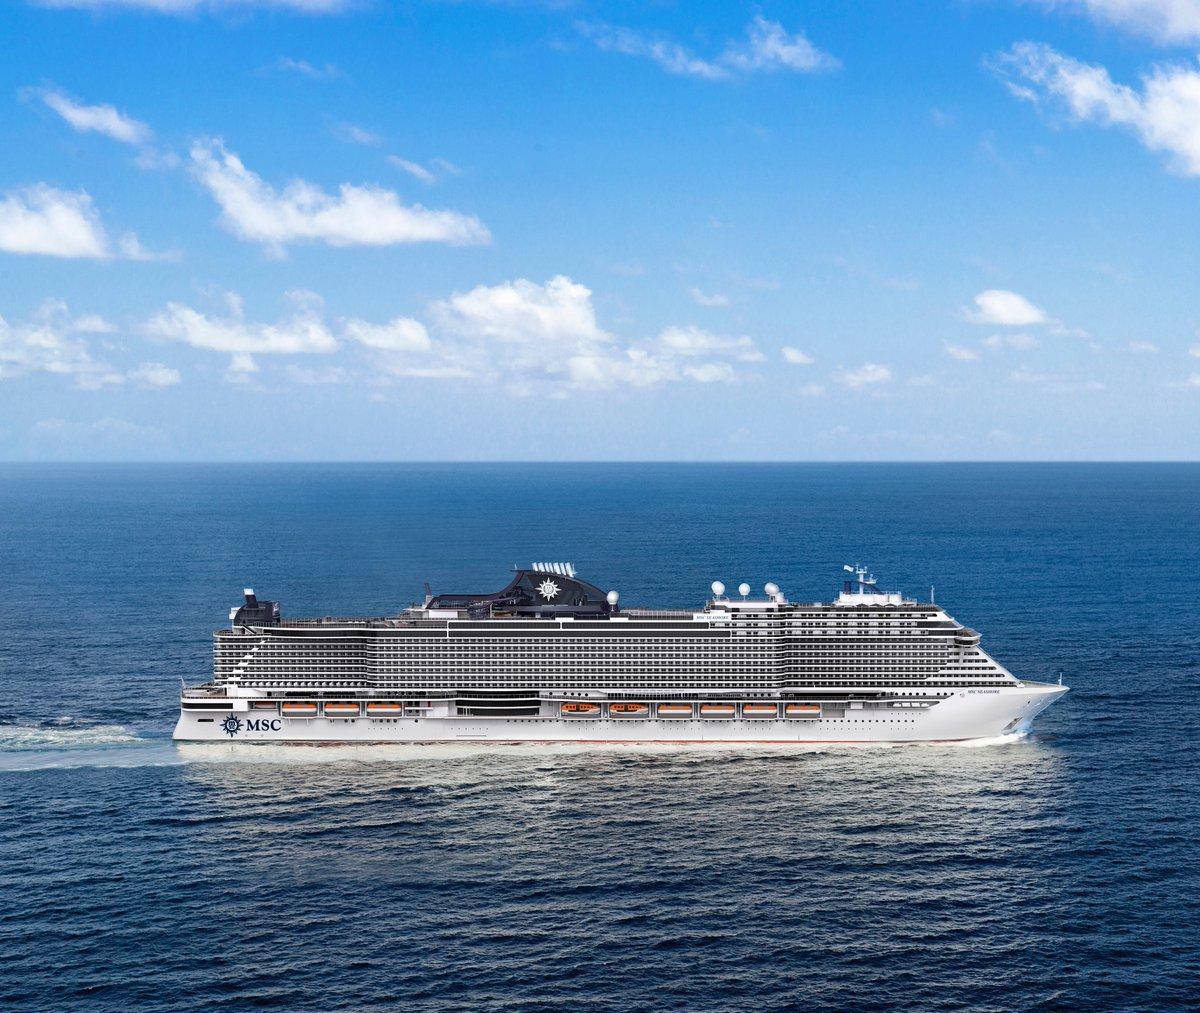 MSC Cruises will be the first cruise line in the world to install a new and advanced innovative technology sanitation system called 'Safe Air' to improve further the quality and cleanliness of the onboard air for its guests and crew.   #CruiseNews @MSC_Cruises_UK https://t.co/MgFMwOBZTj